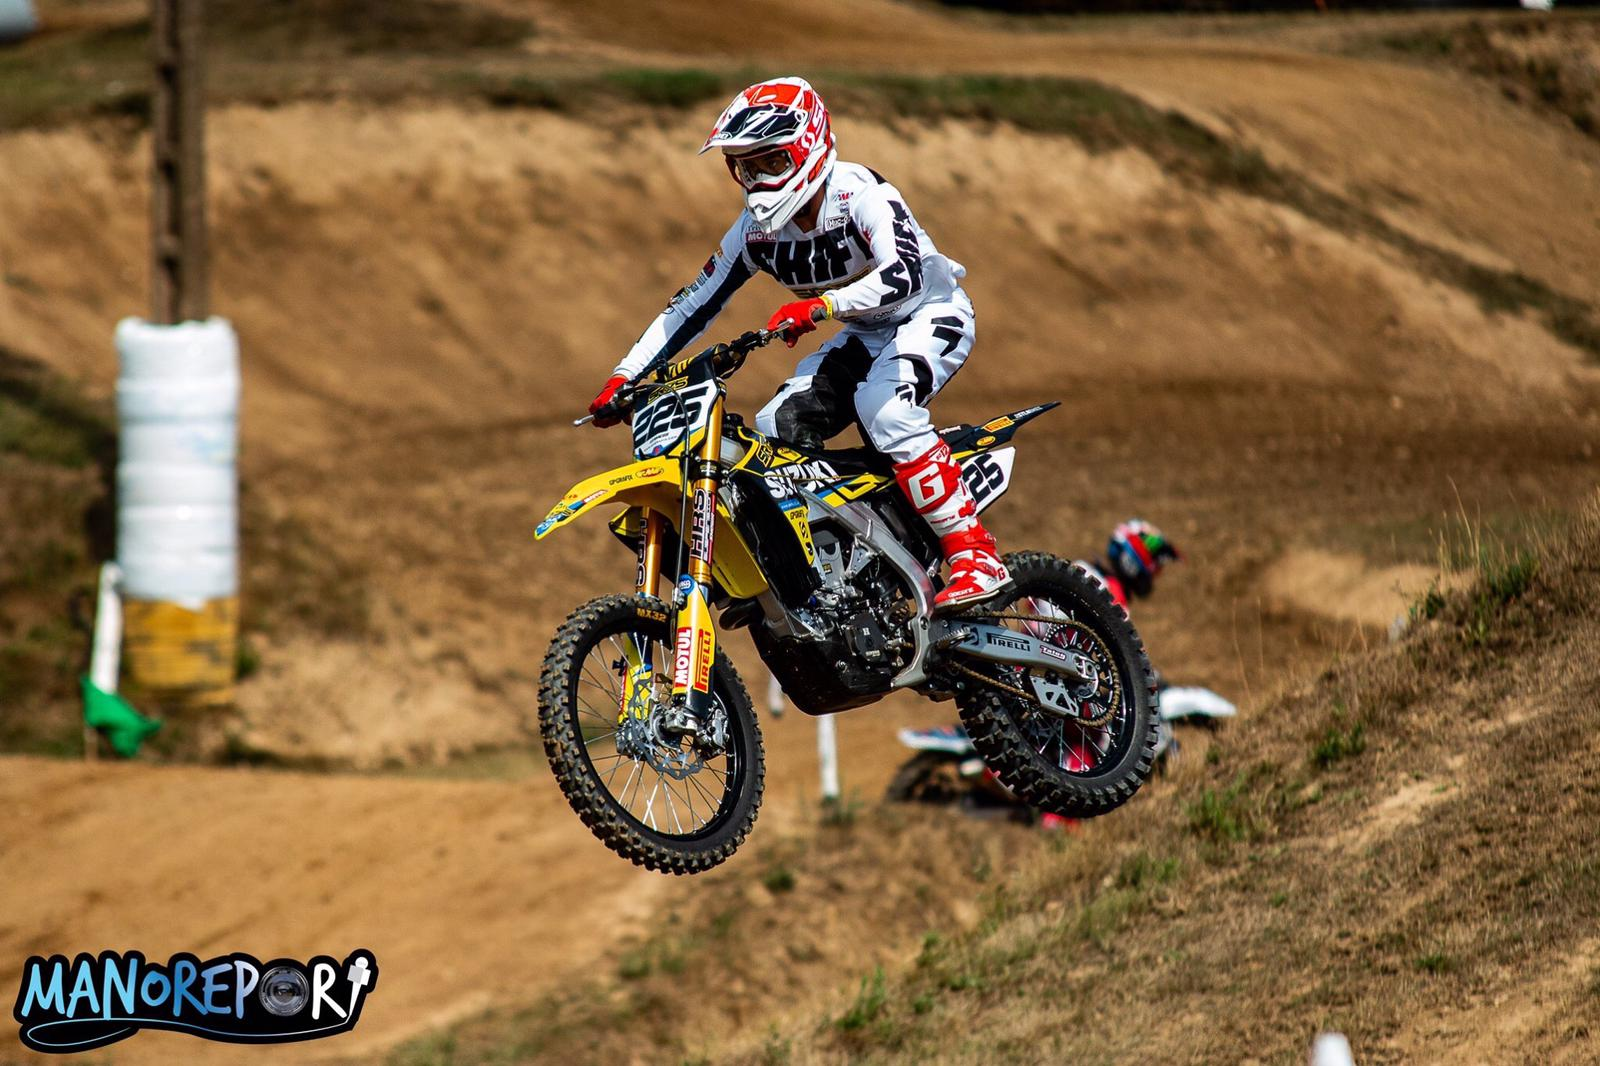 SX & MX PODIUMS FOR SR75'S CHARLES LEFRANÇOIS